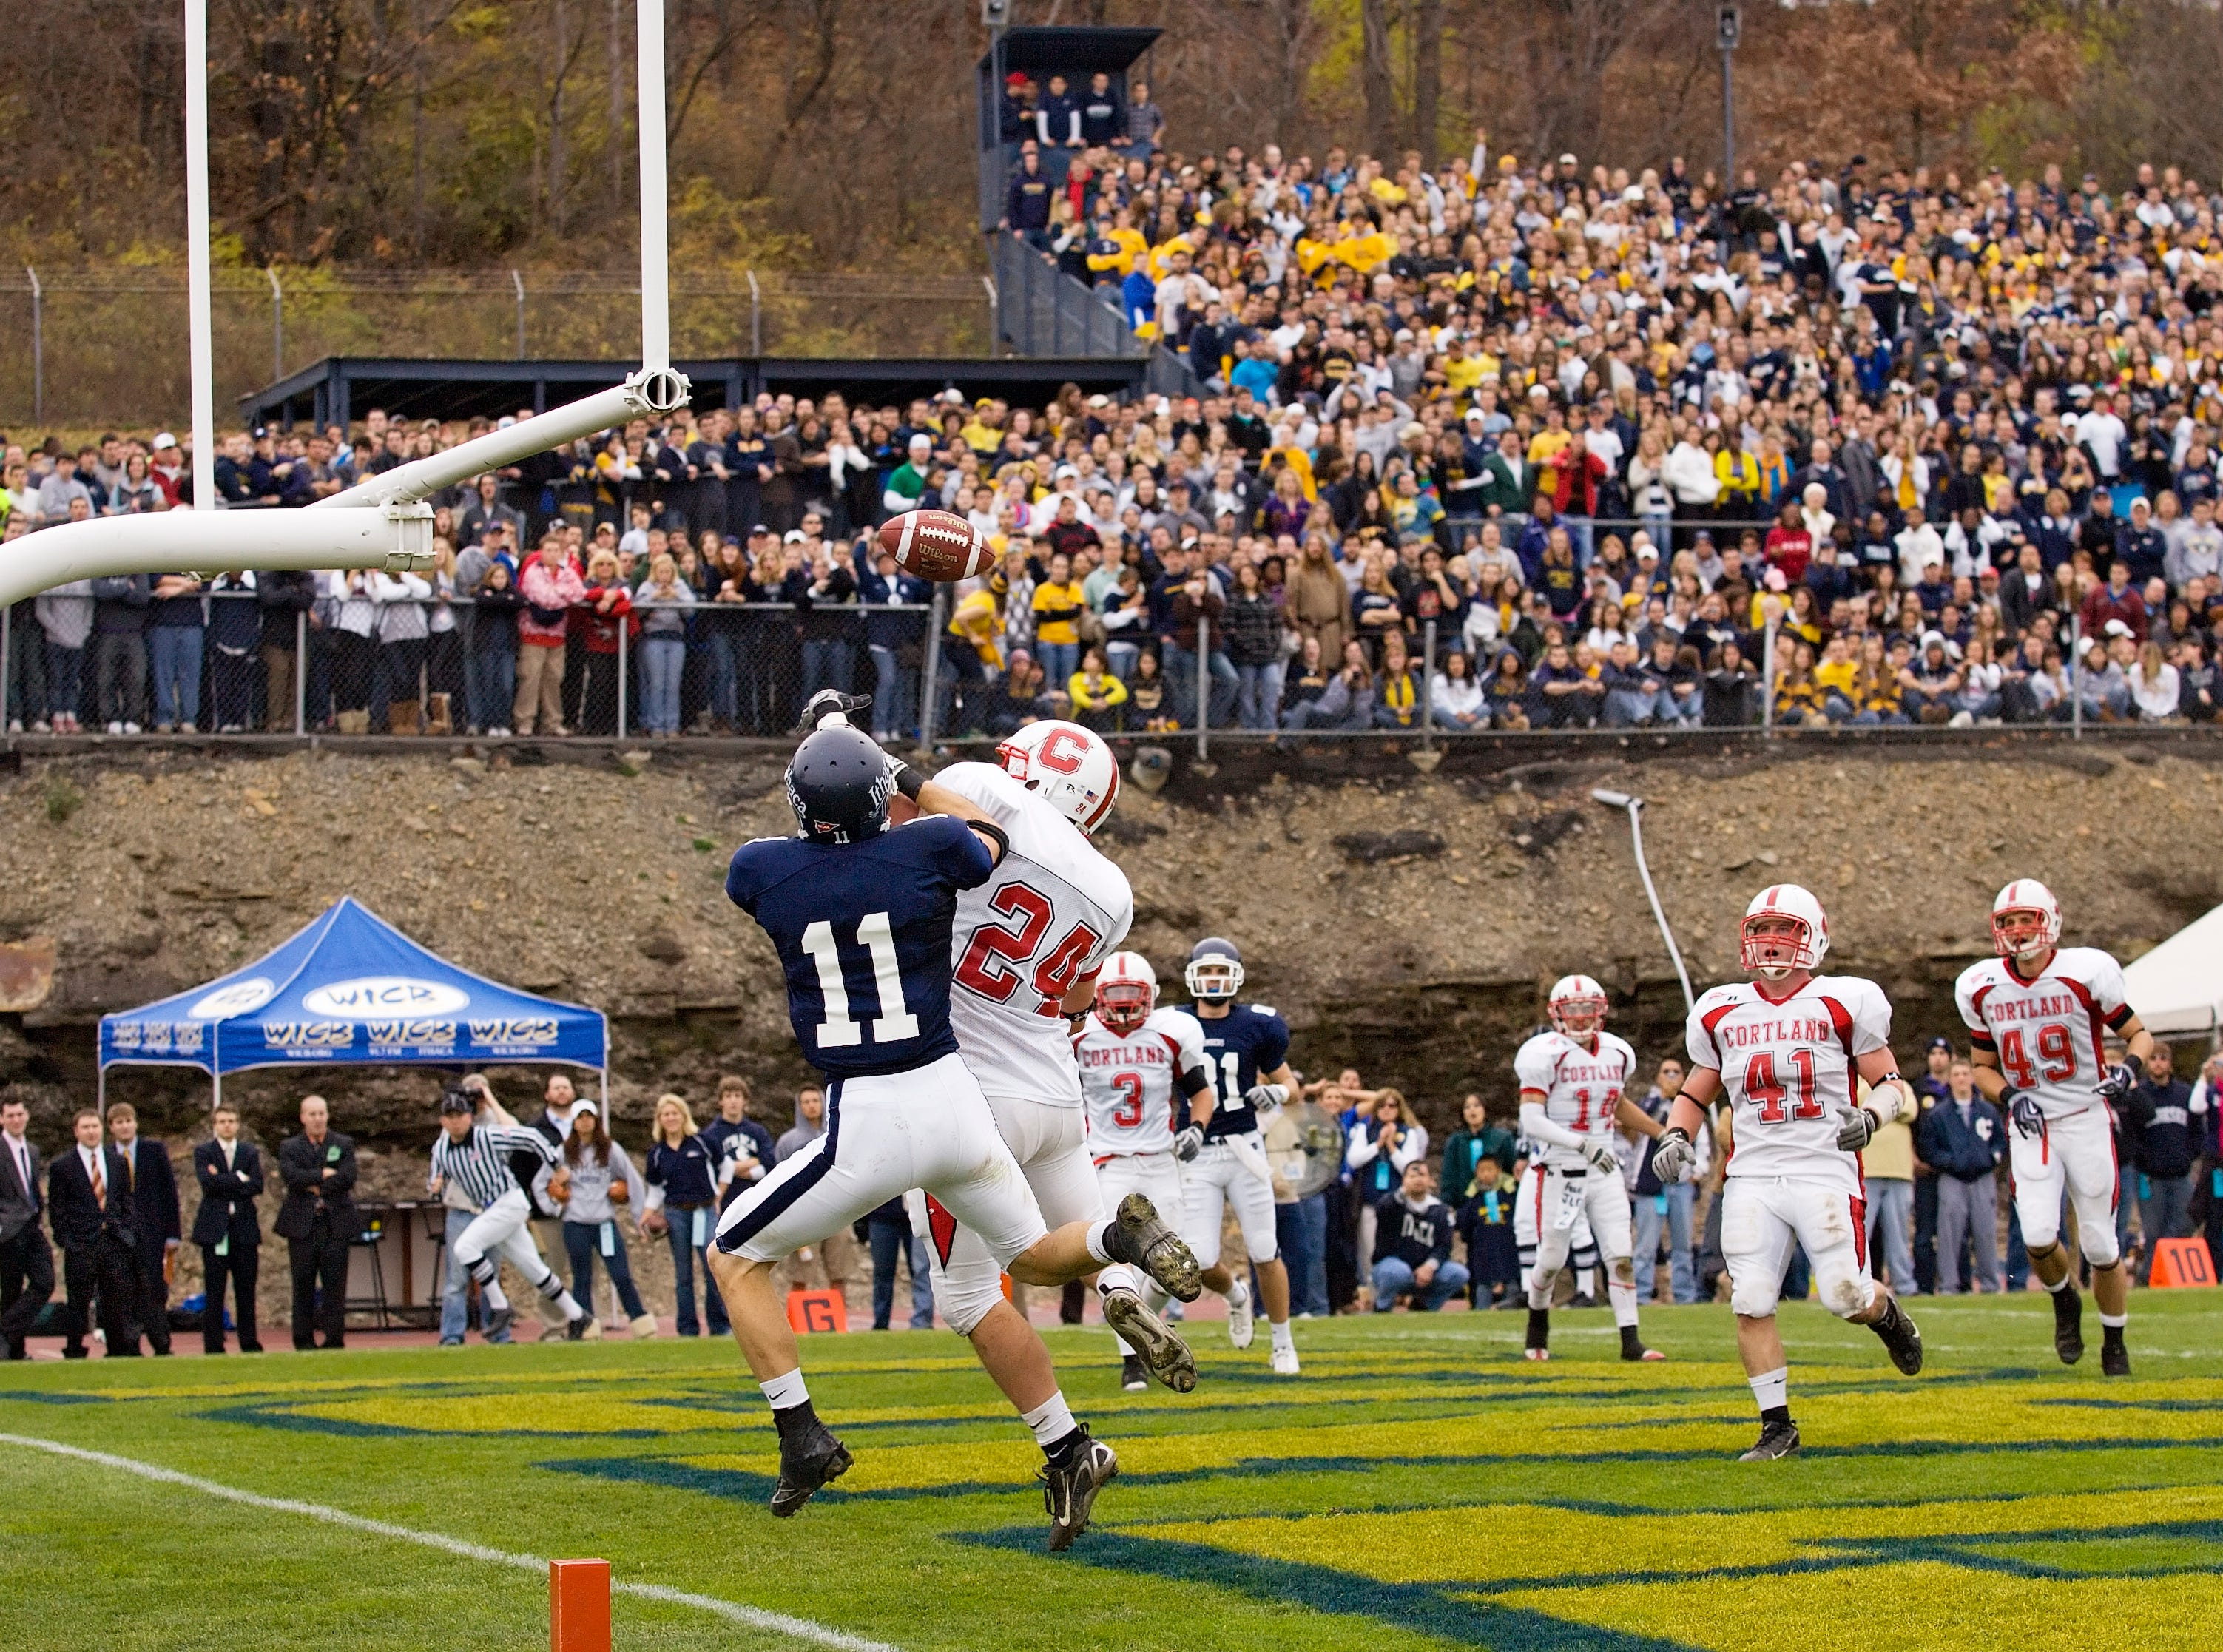 2009: IC receiver Thomas Vossler and Cortland linebacker Colan Shue leap for a pass in the end zone of last year's game.